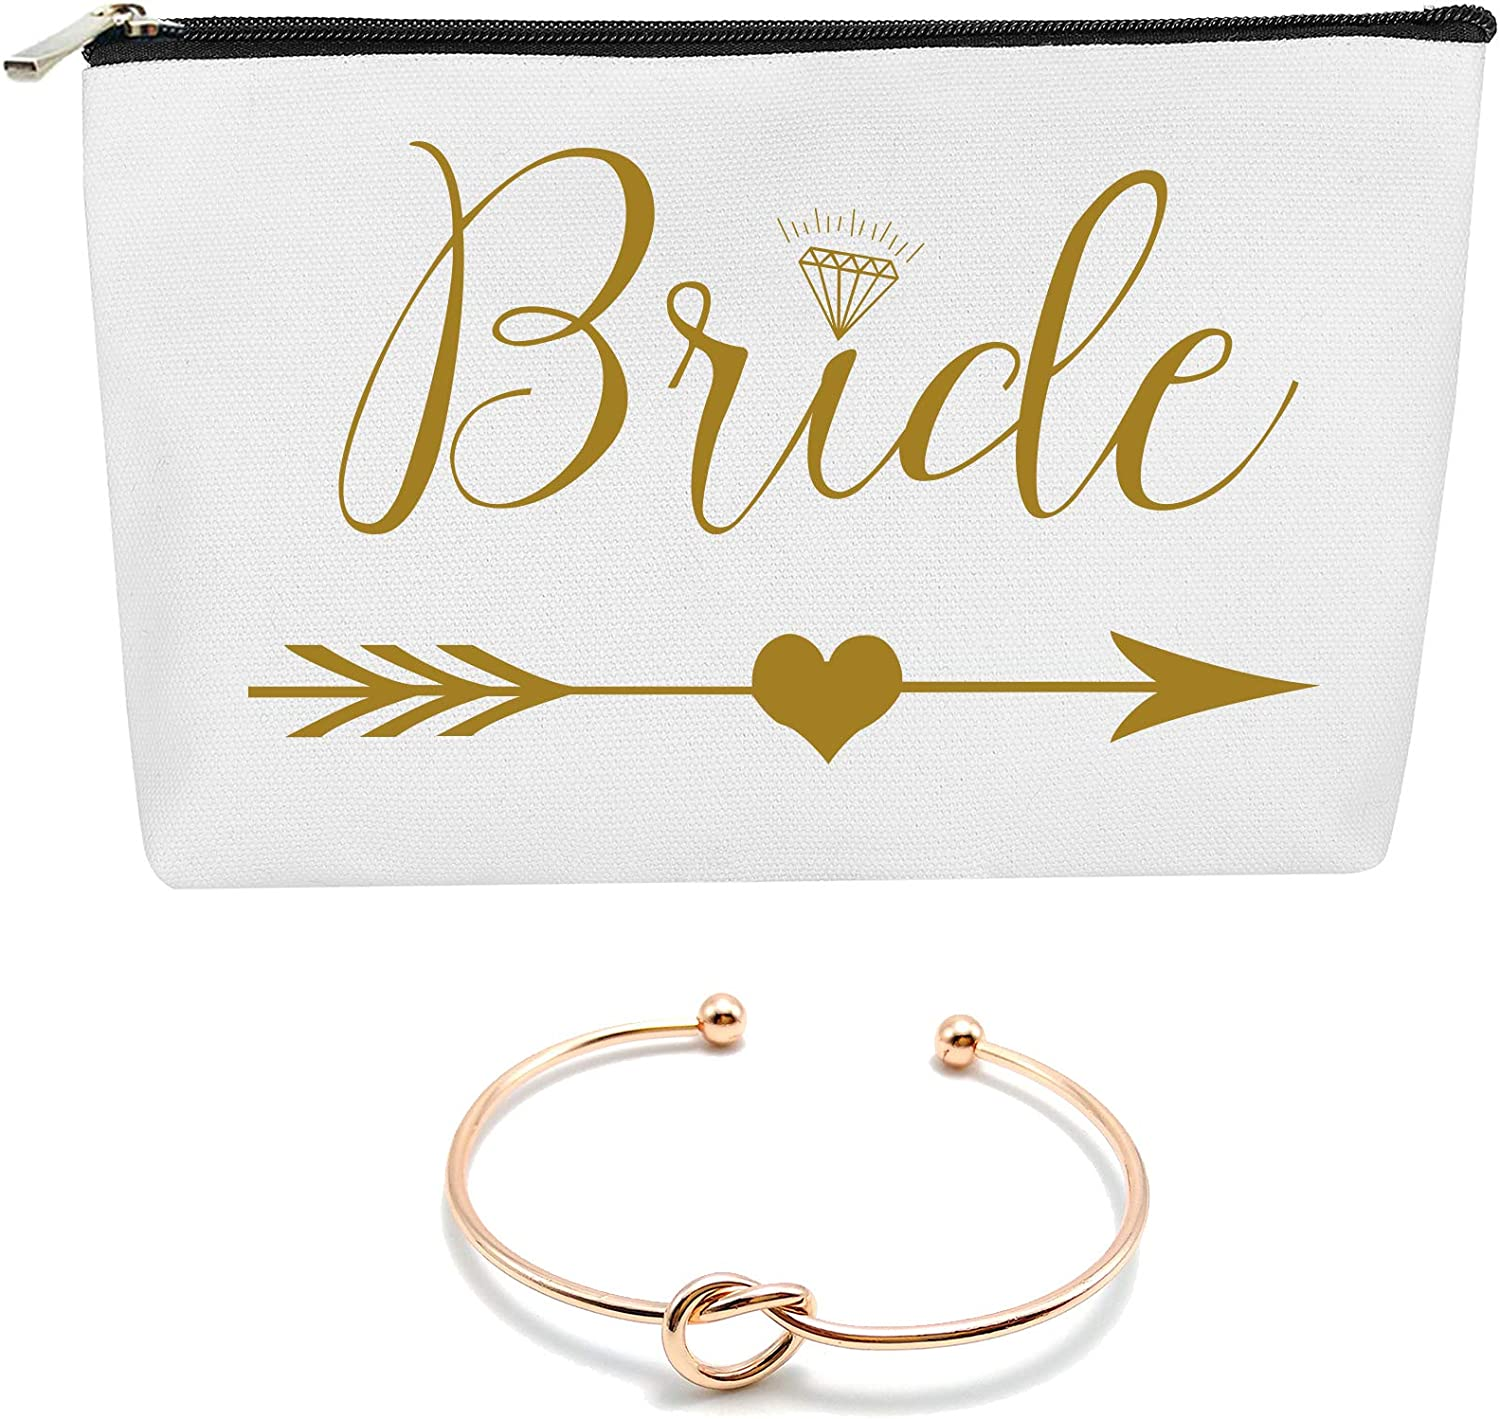 COFOZA Bride Weekly update Product Gifts SetWedding Bridal Mul Shower Be To Gift